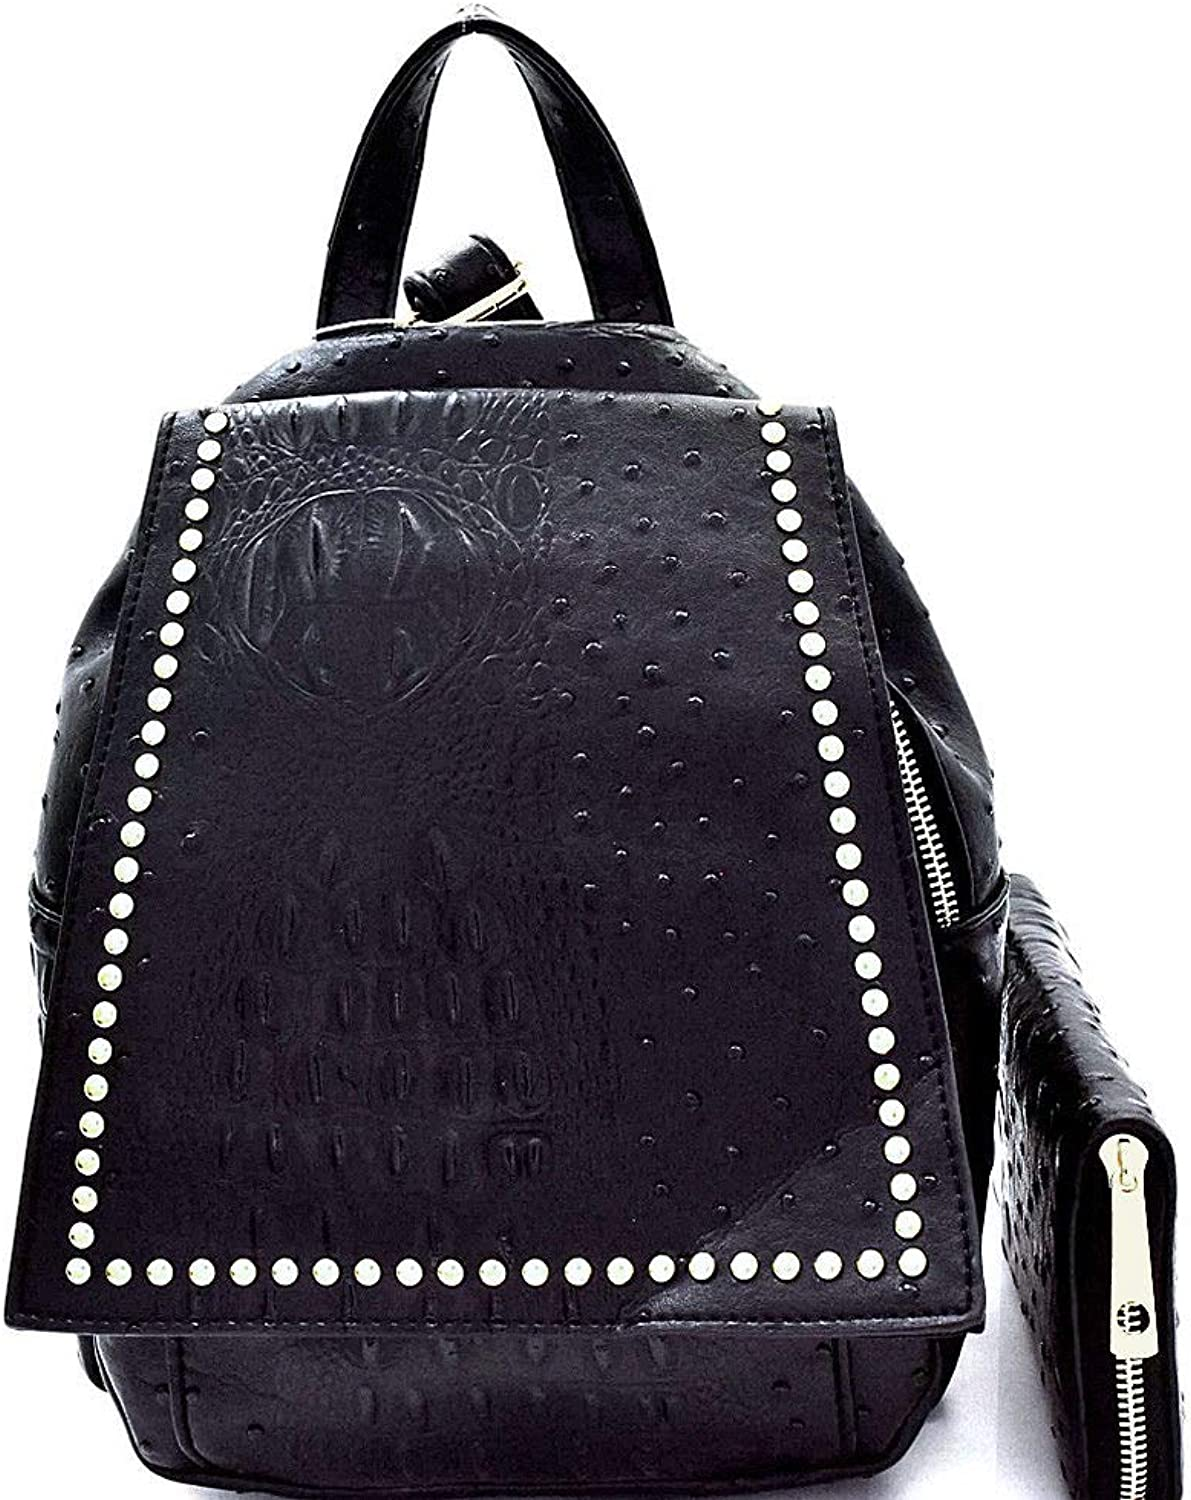 Handbag Republic Ostrich Embossed MultiCompartment Backpack + Wallet BLACK